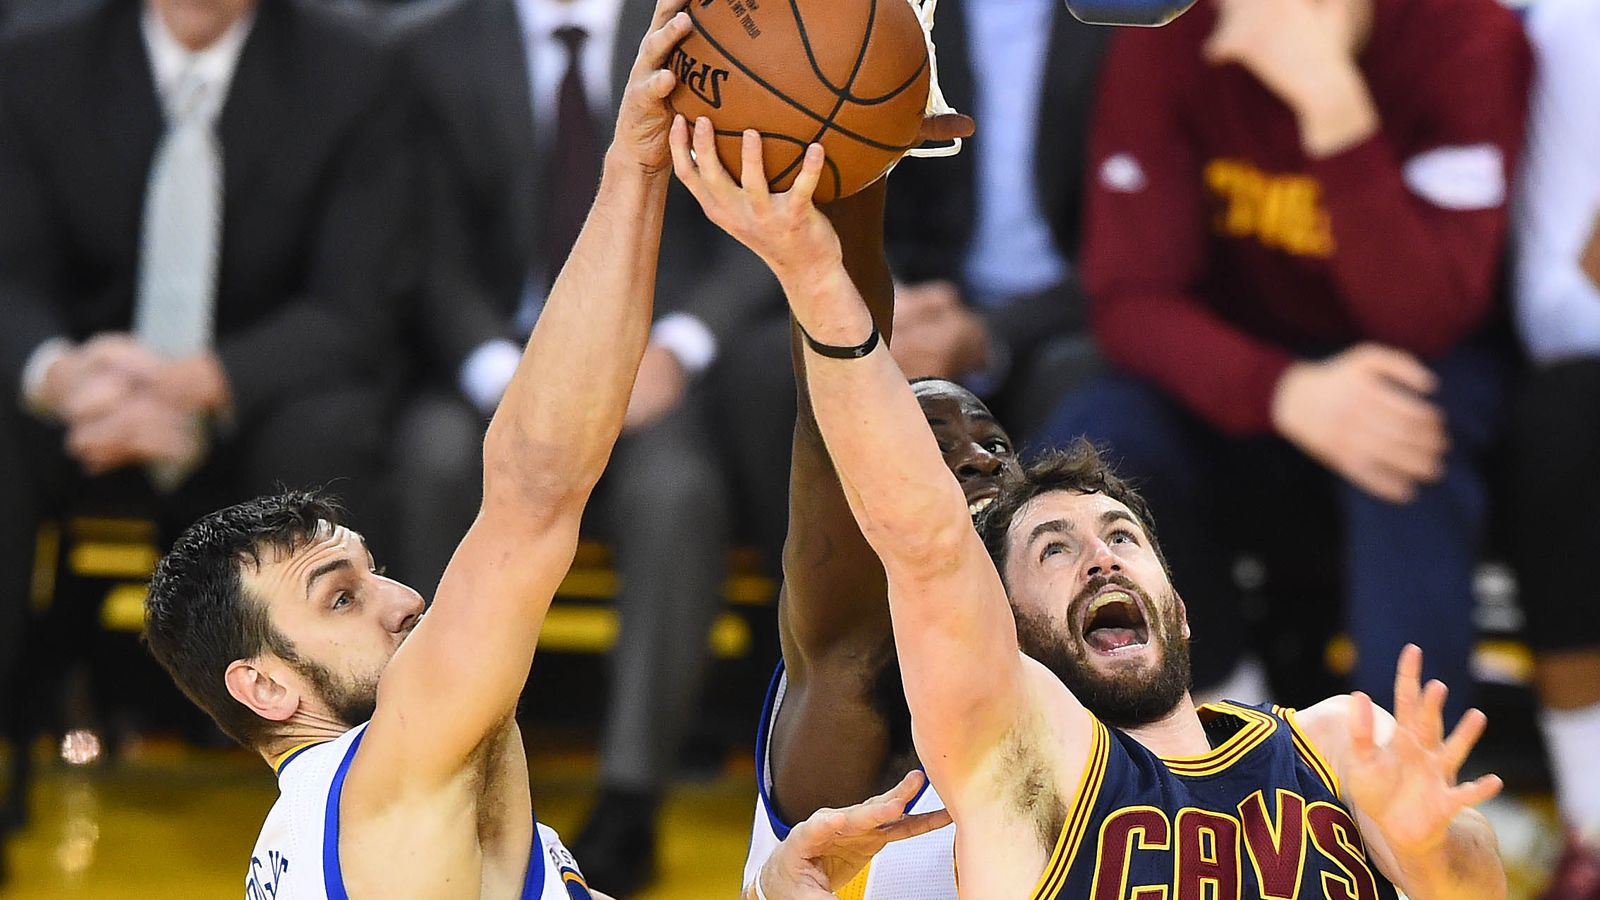 Warriors trade Andrew Bogut to Mavericks to clear cap space to sign Kevin Durant